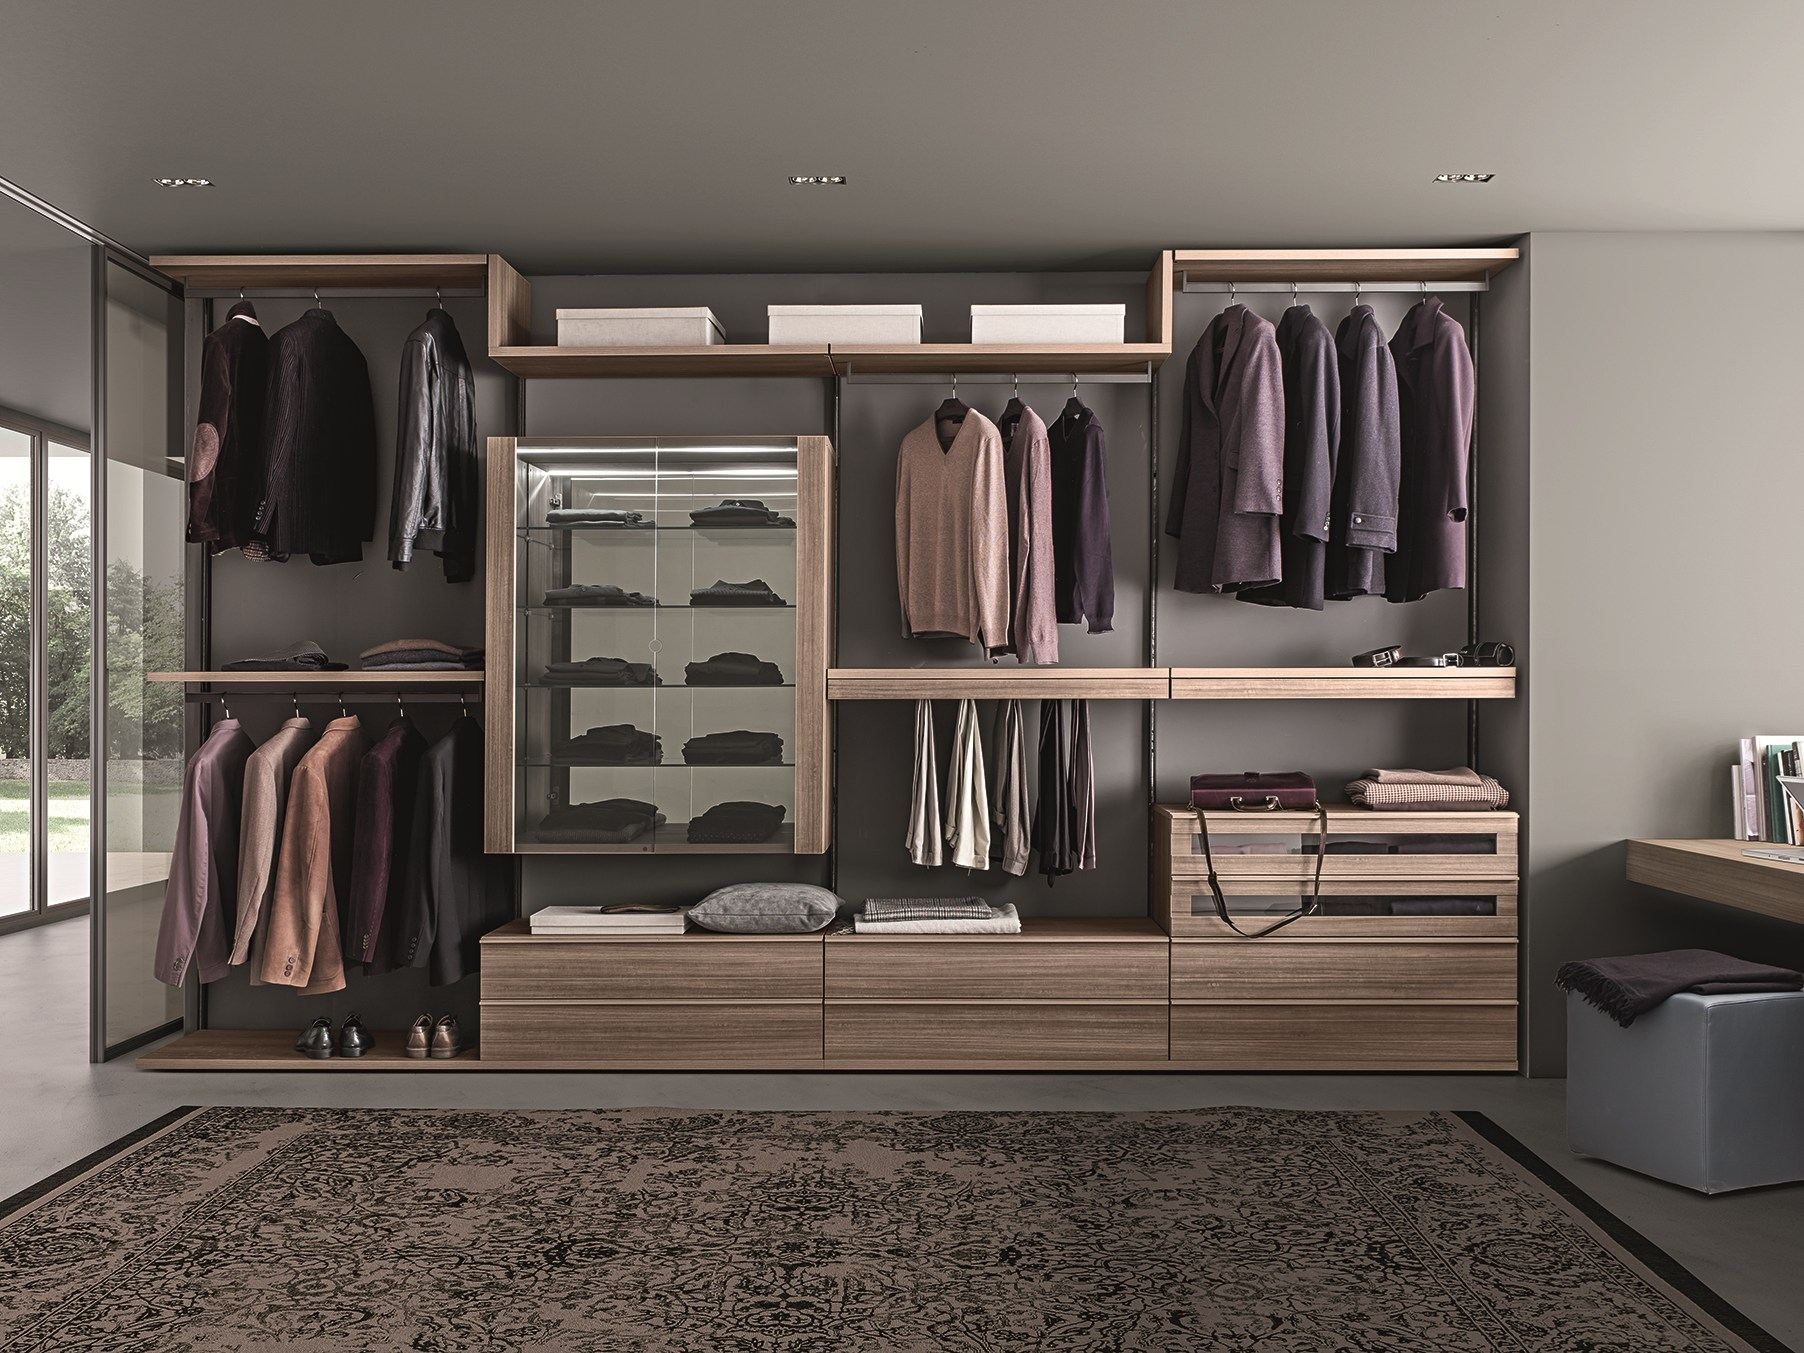 Cabina armadio componibile varius free by presotto for Mobili design